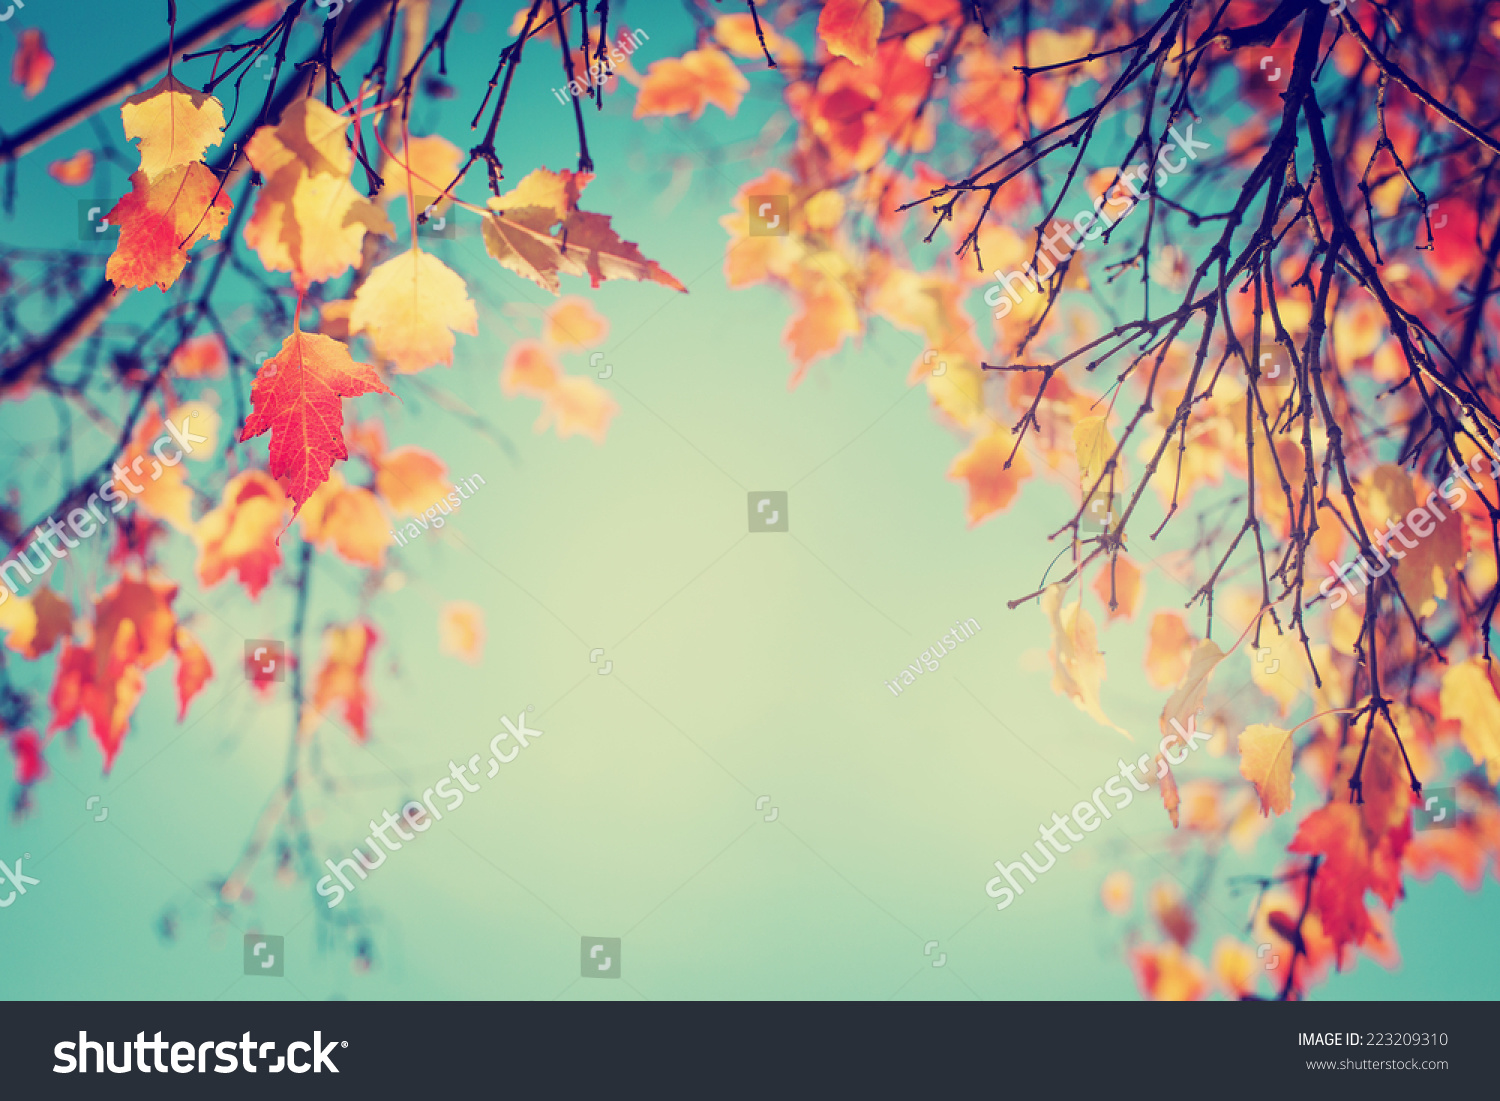 Colorful Foliage Autumn Park Autumn Leaves Stock Photo (Royalty Free ...